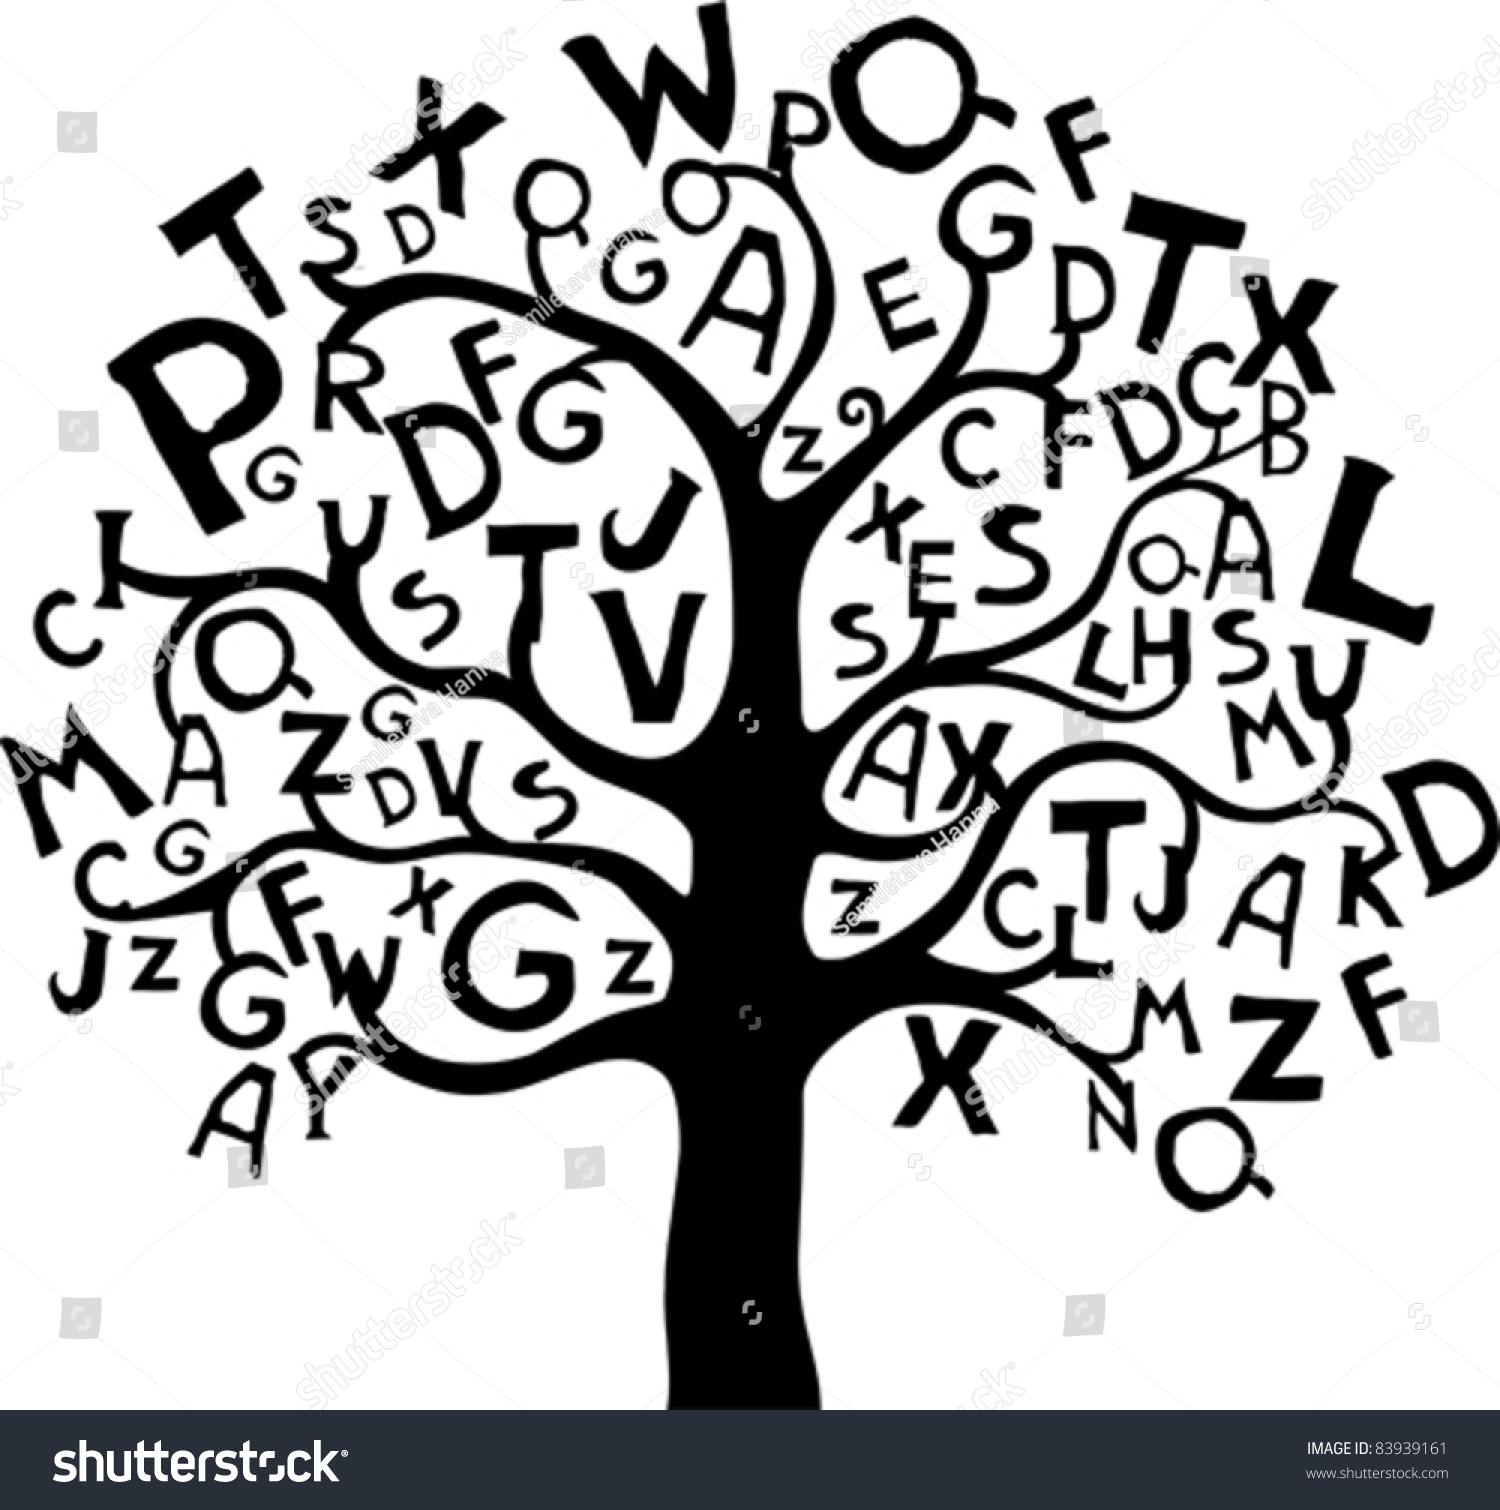 abstract tree with black letters isolated on white background vector illustration